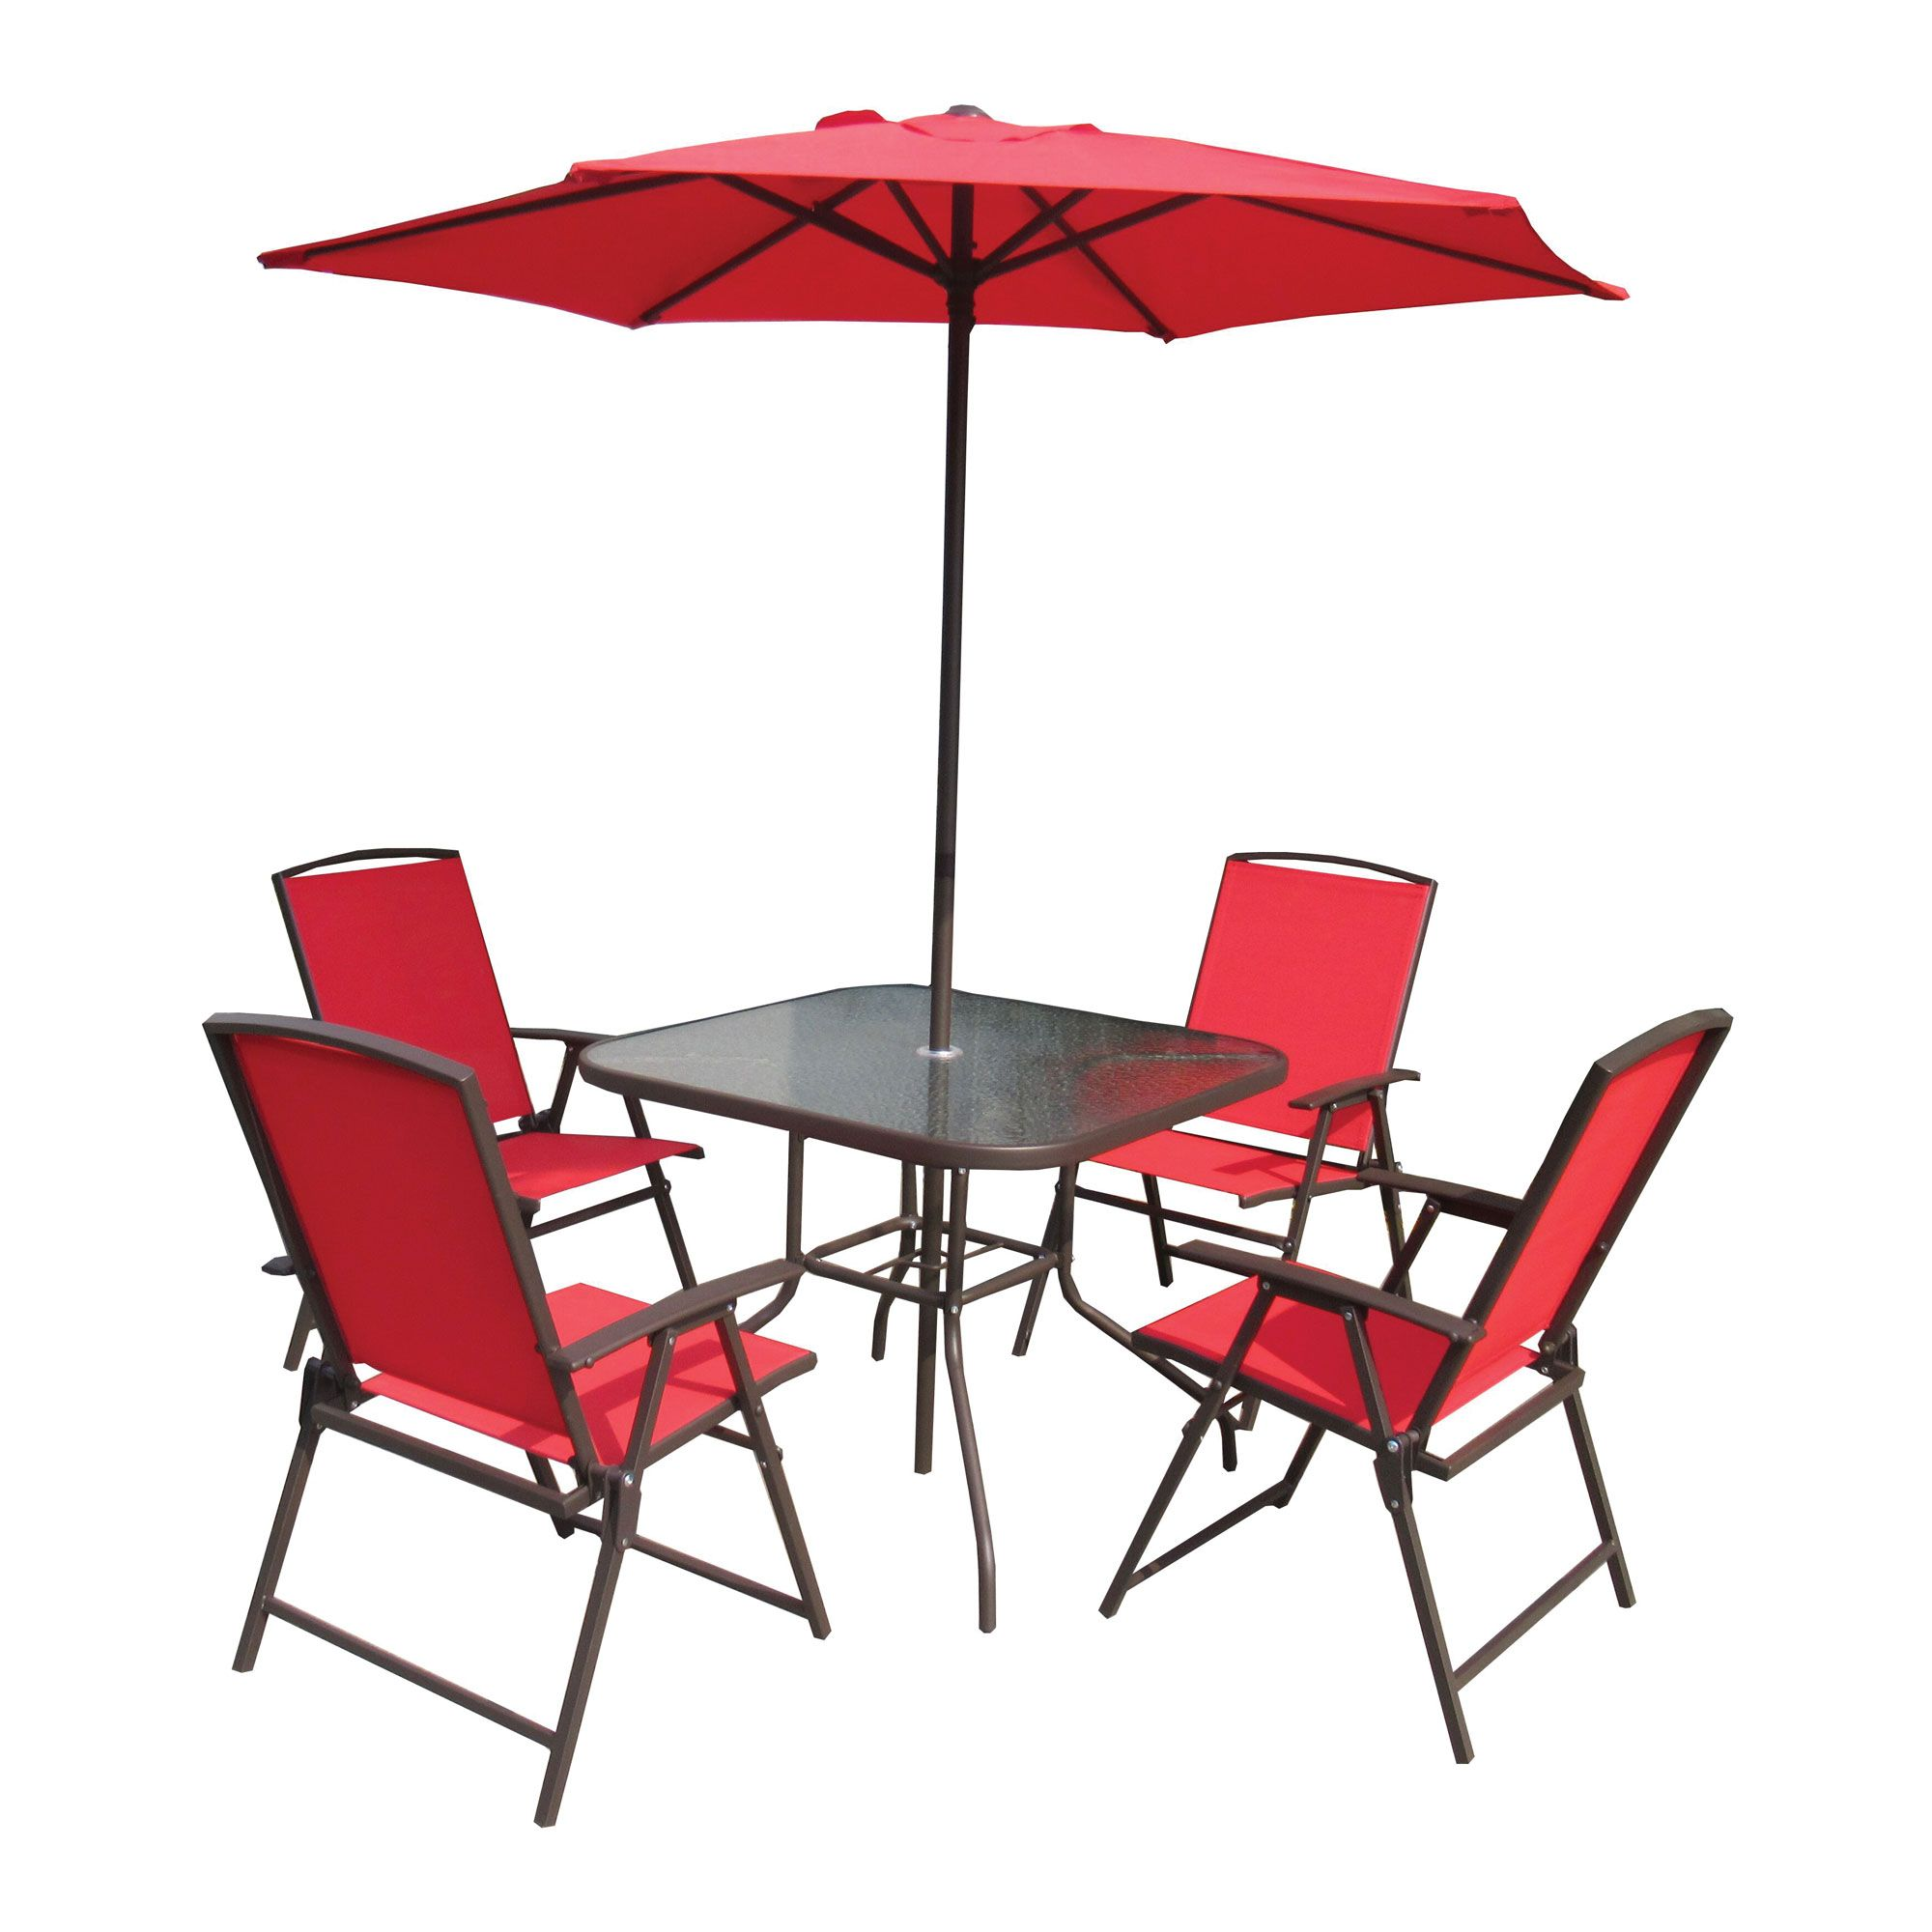 Chair With Umbrella 6 Piece Outdoor Steel Folding Chair Set With Umbrella